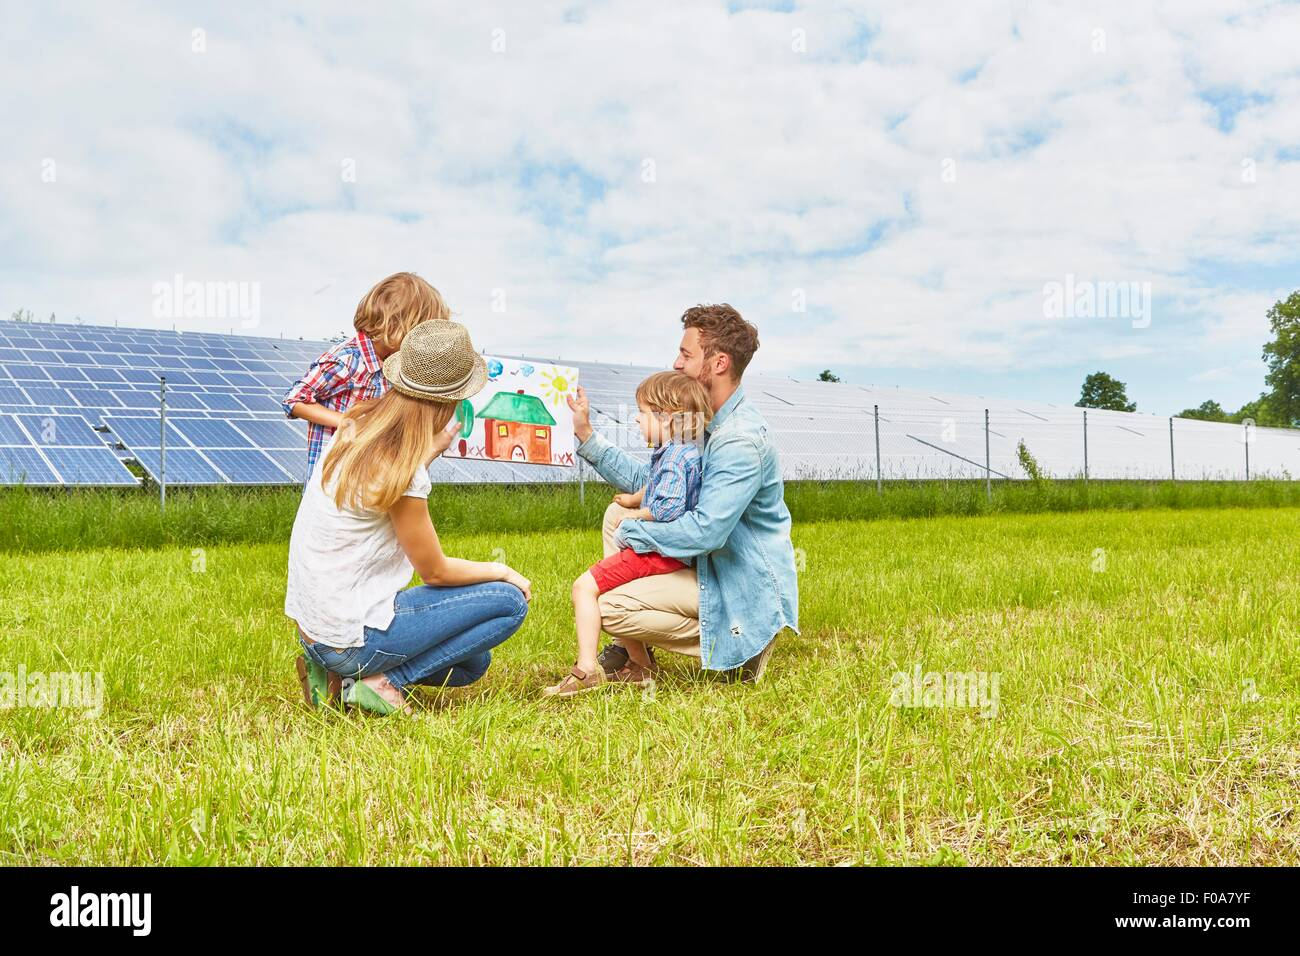 Young family sitting in field, à au dessin d'enfant de la maison, à côté de la ferme solaire Photo Stock